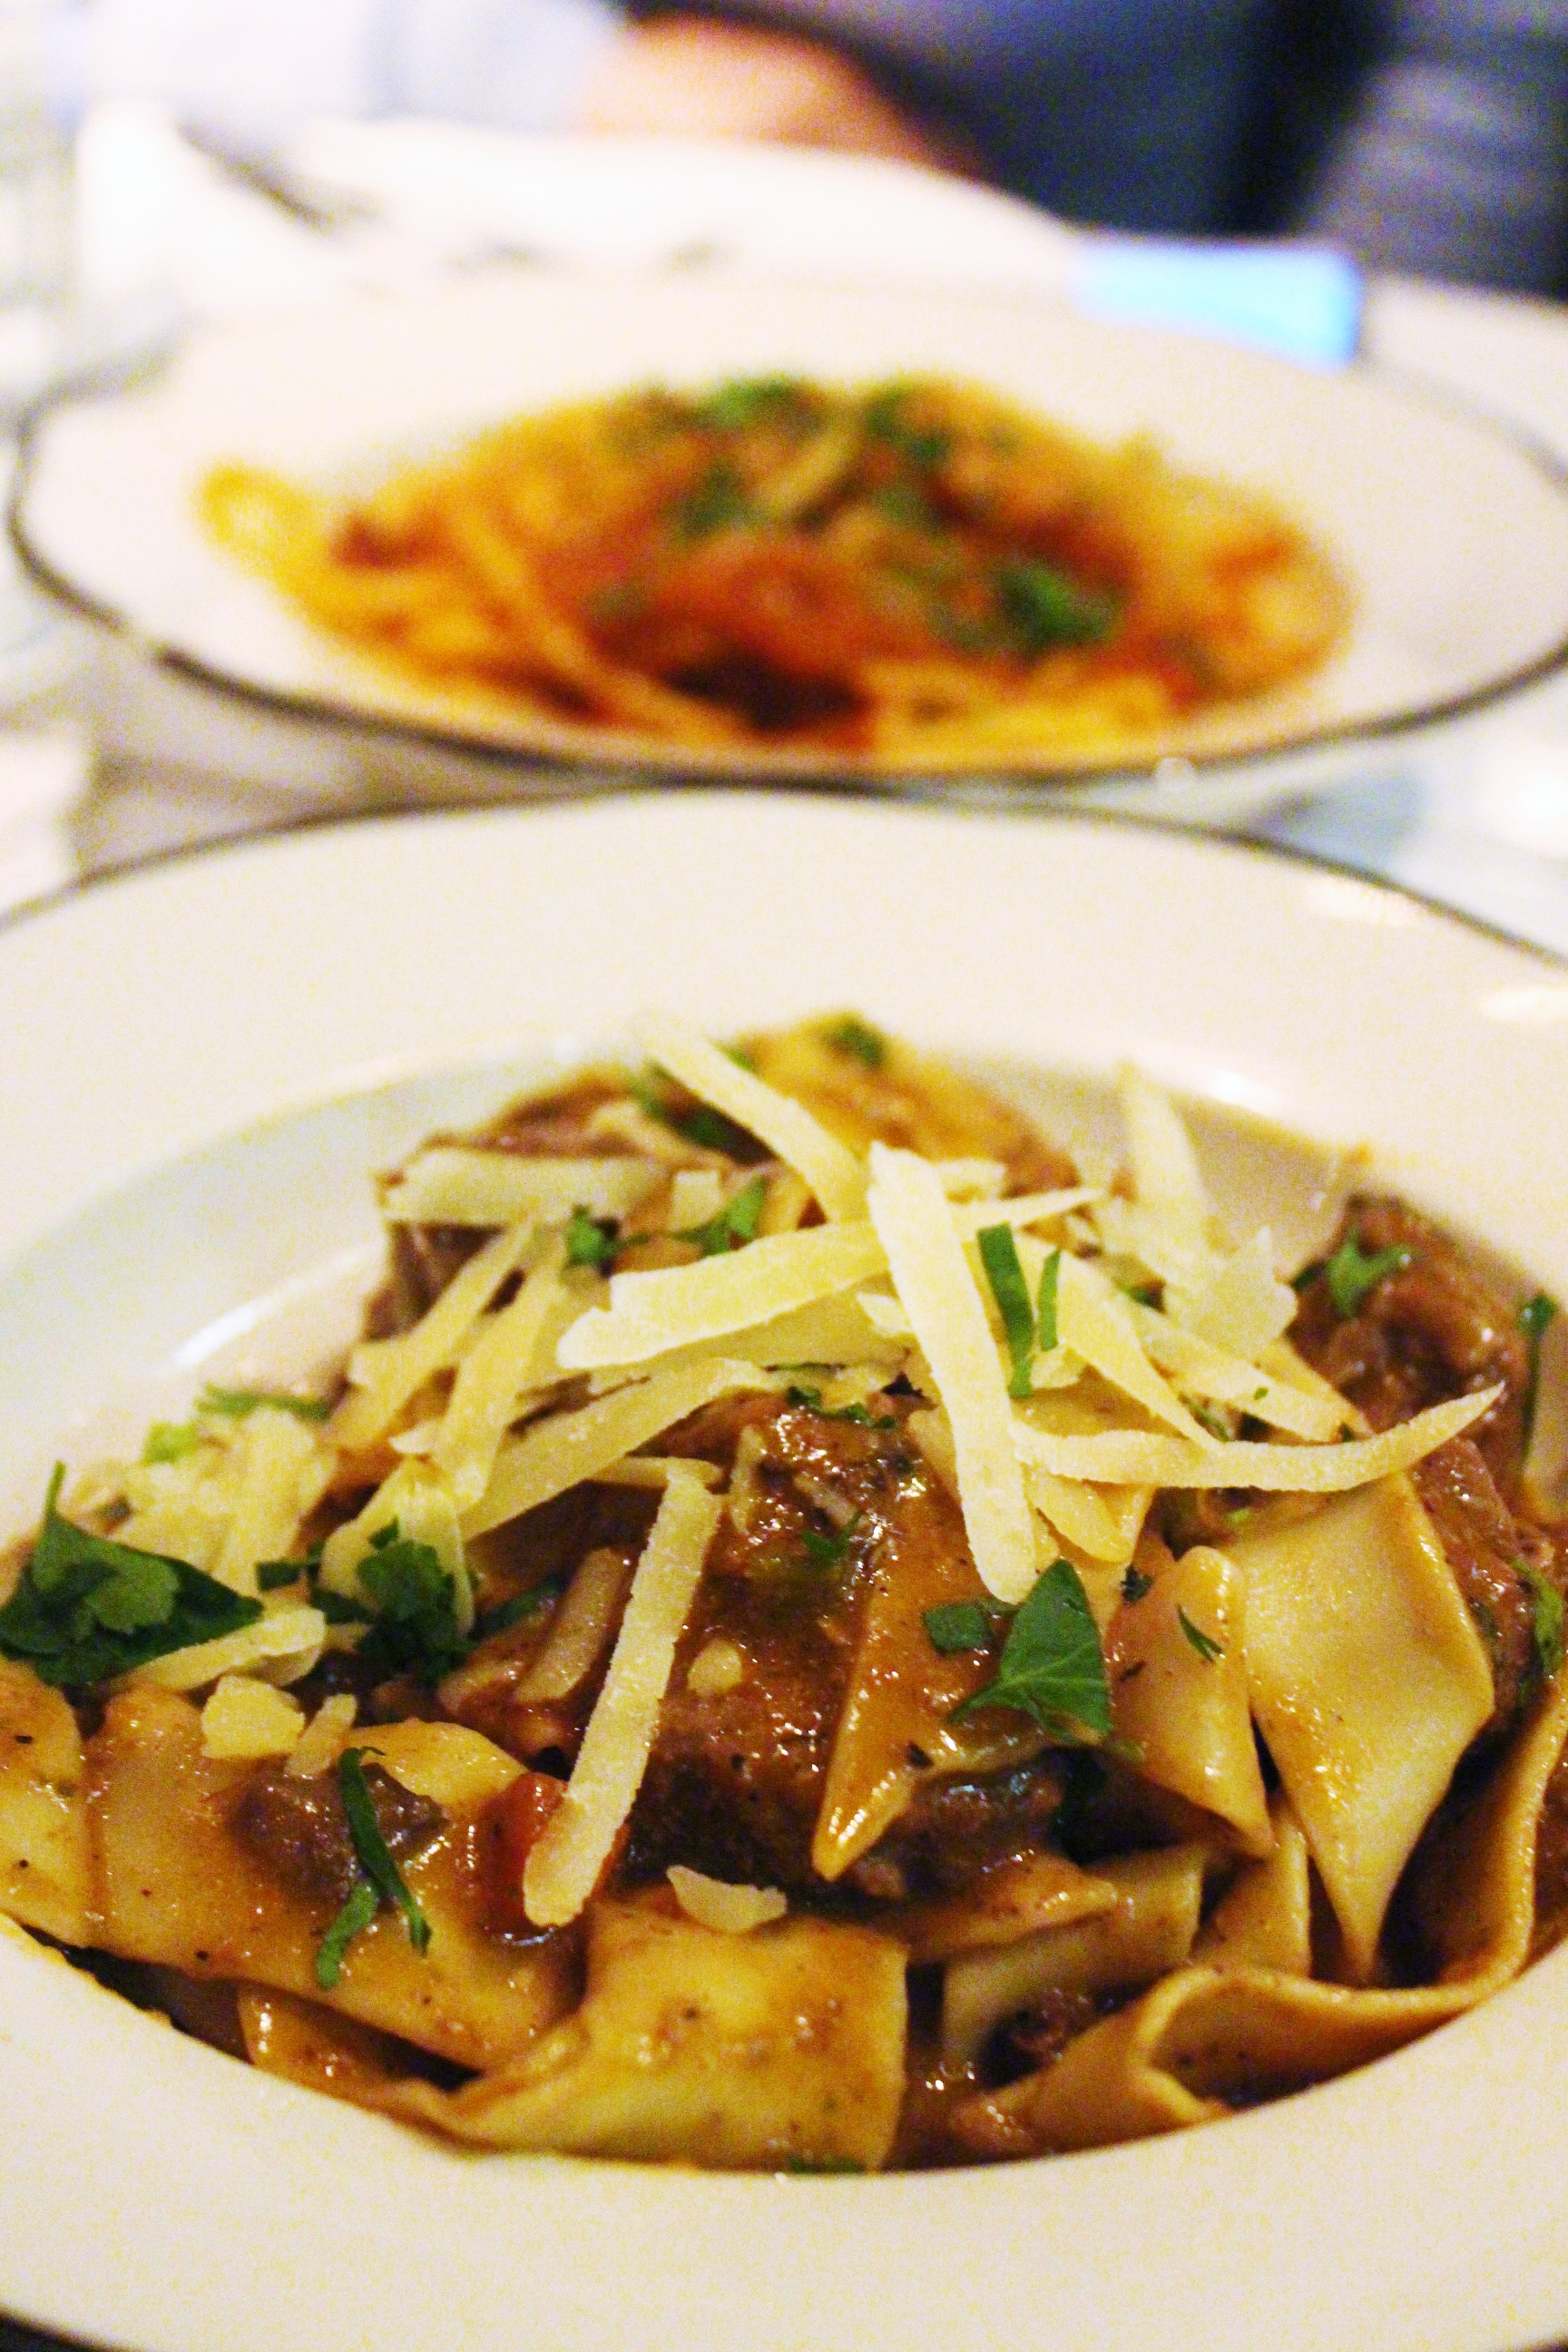 Pappardelle Cinghiale: Slow Braised Wild Boar at Briciola